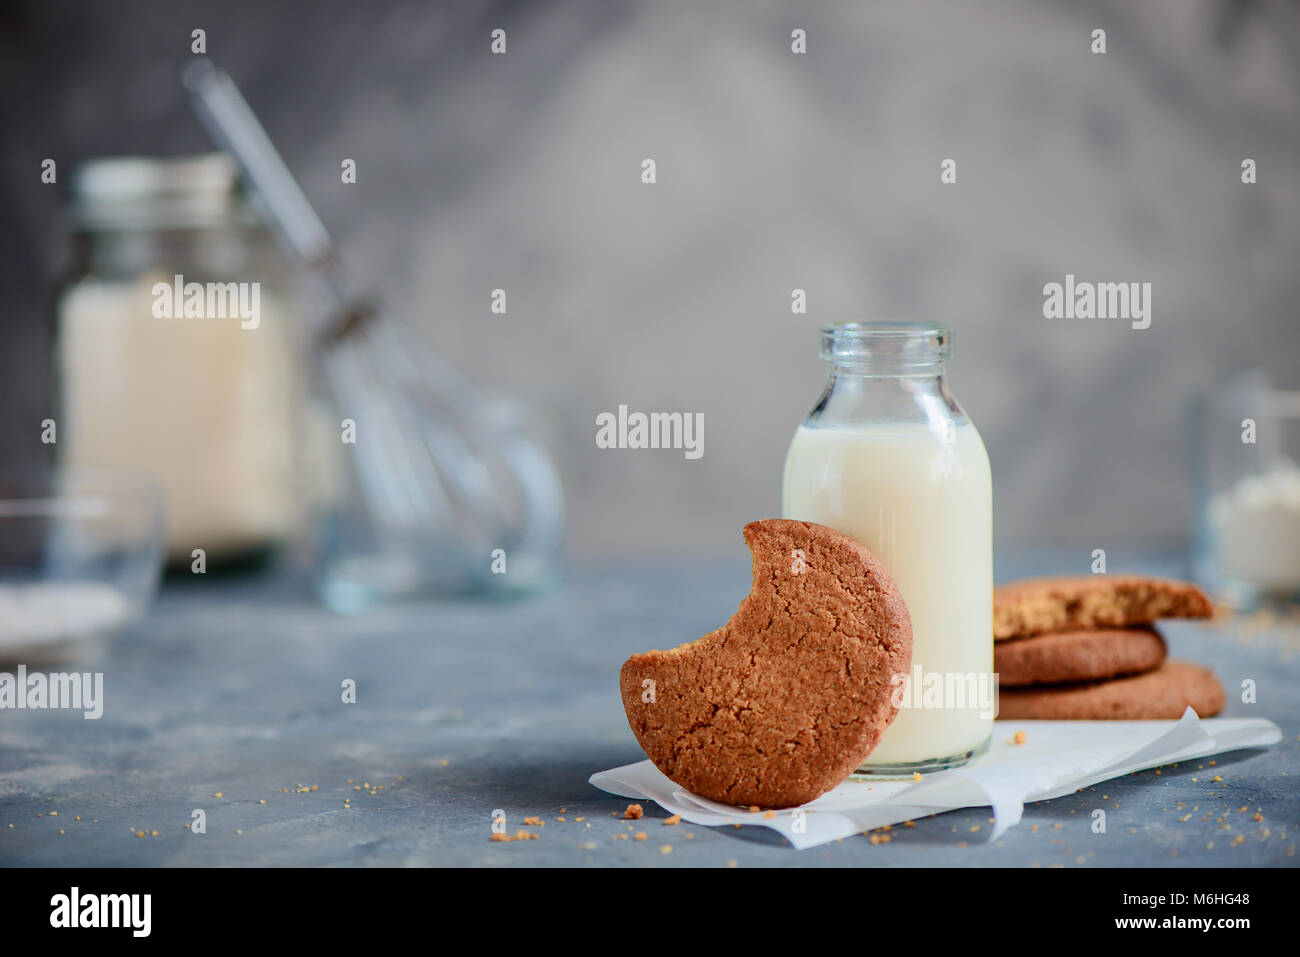 Tasty homemade pastry concept with copy space. Cookie with a bite mark on a kitchen table with a milk bottle and - Stock Image